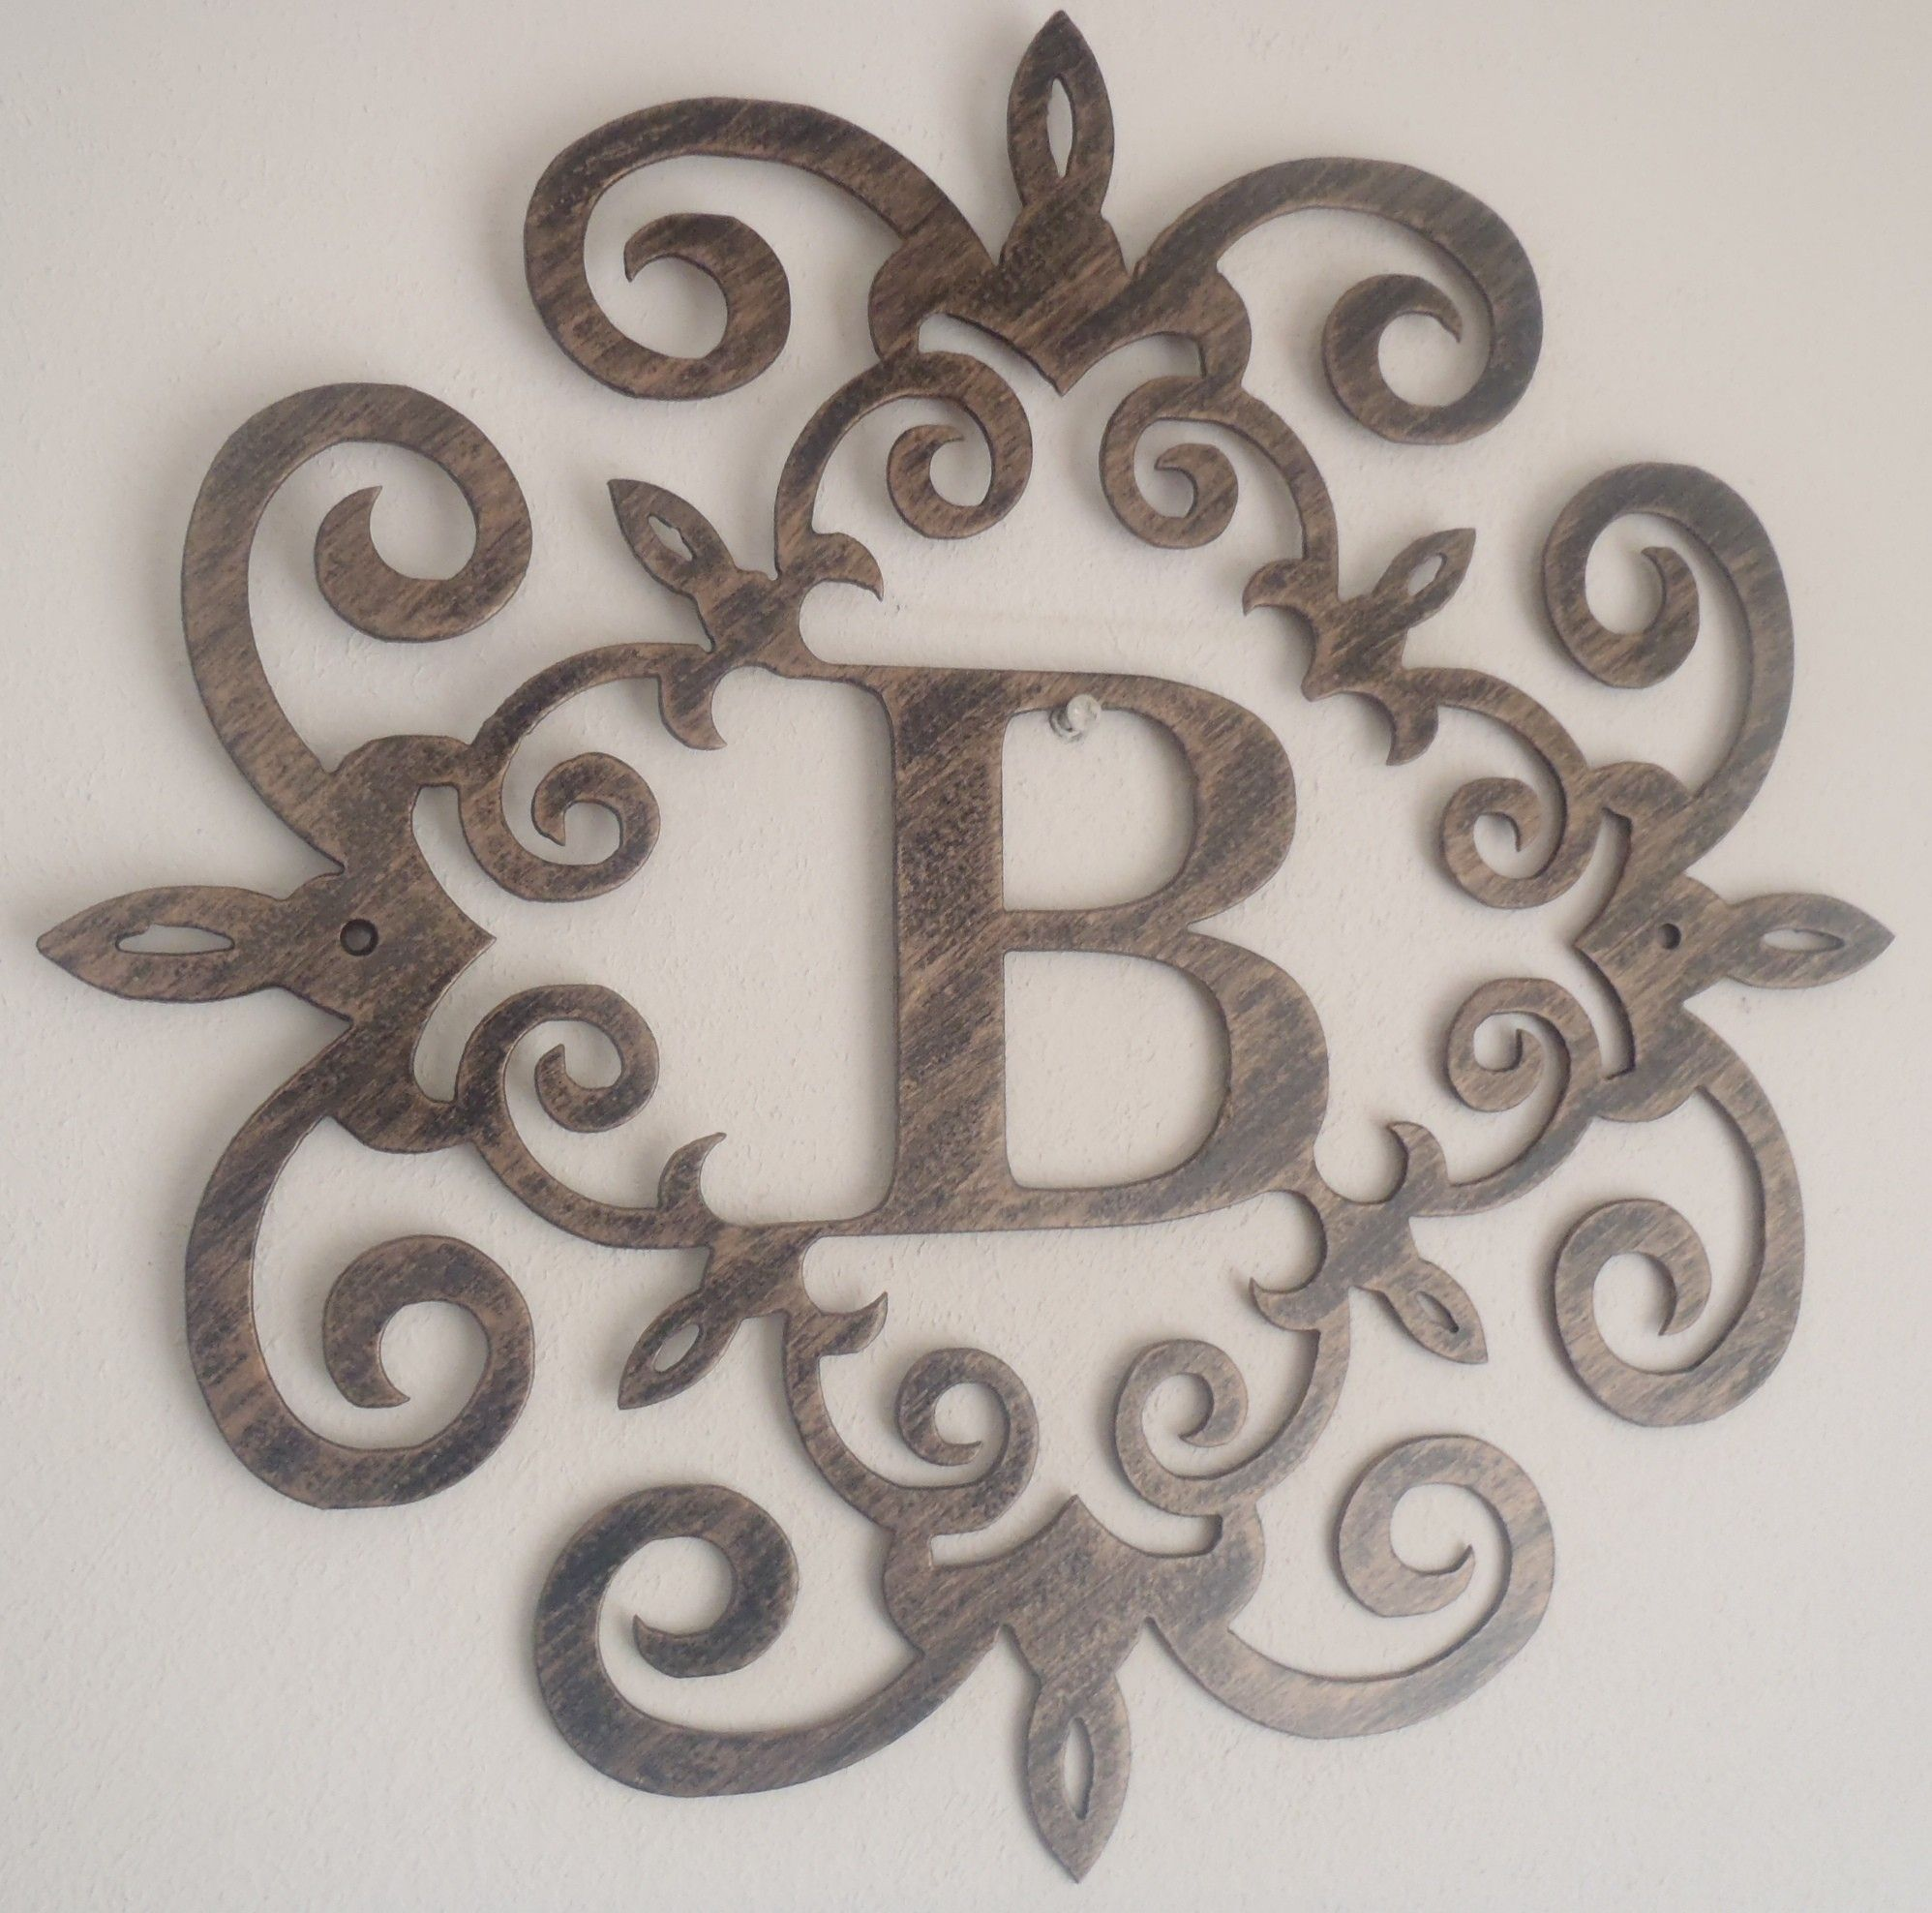 Family Initial Monogram Inside A Metal Scroll With B Letter Wall